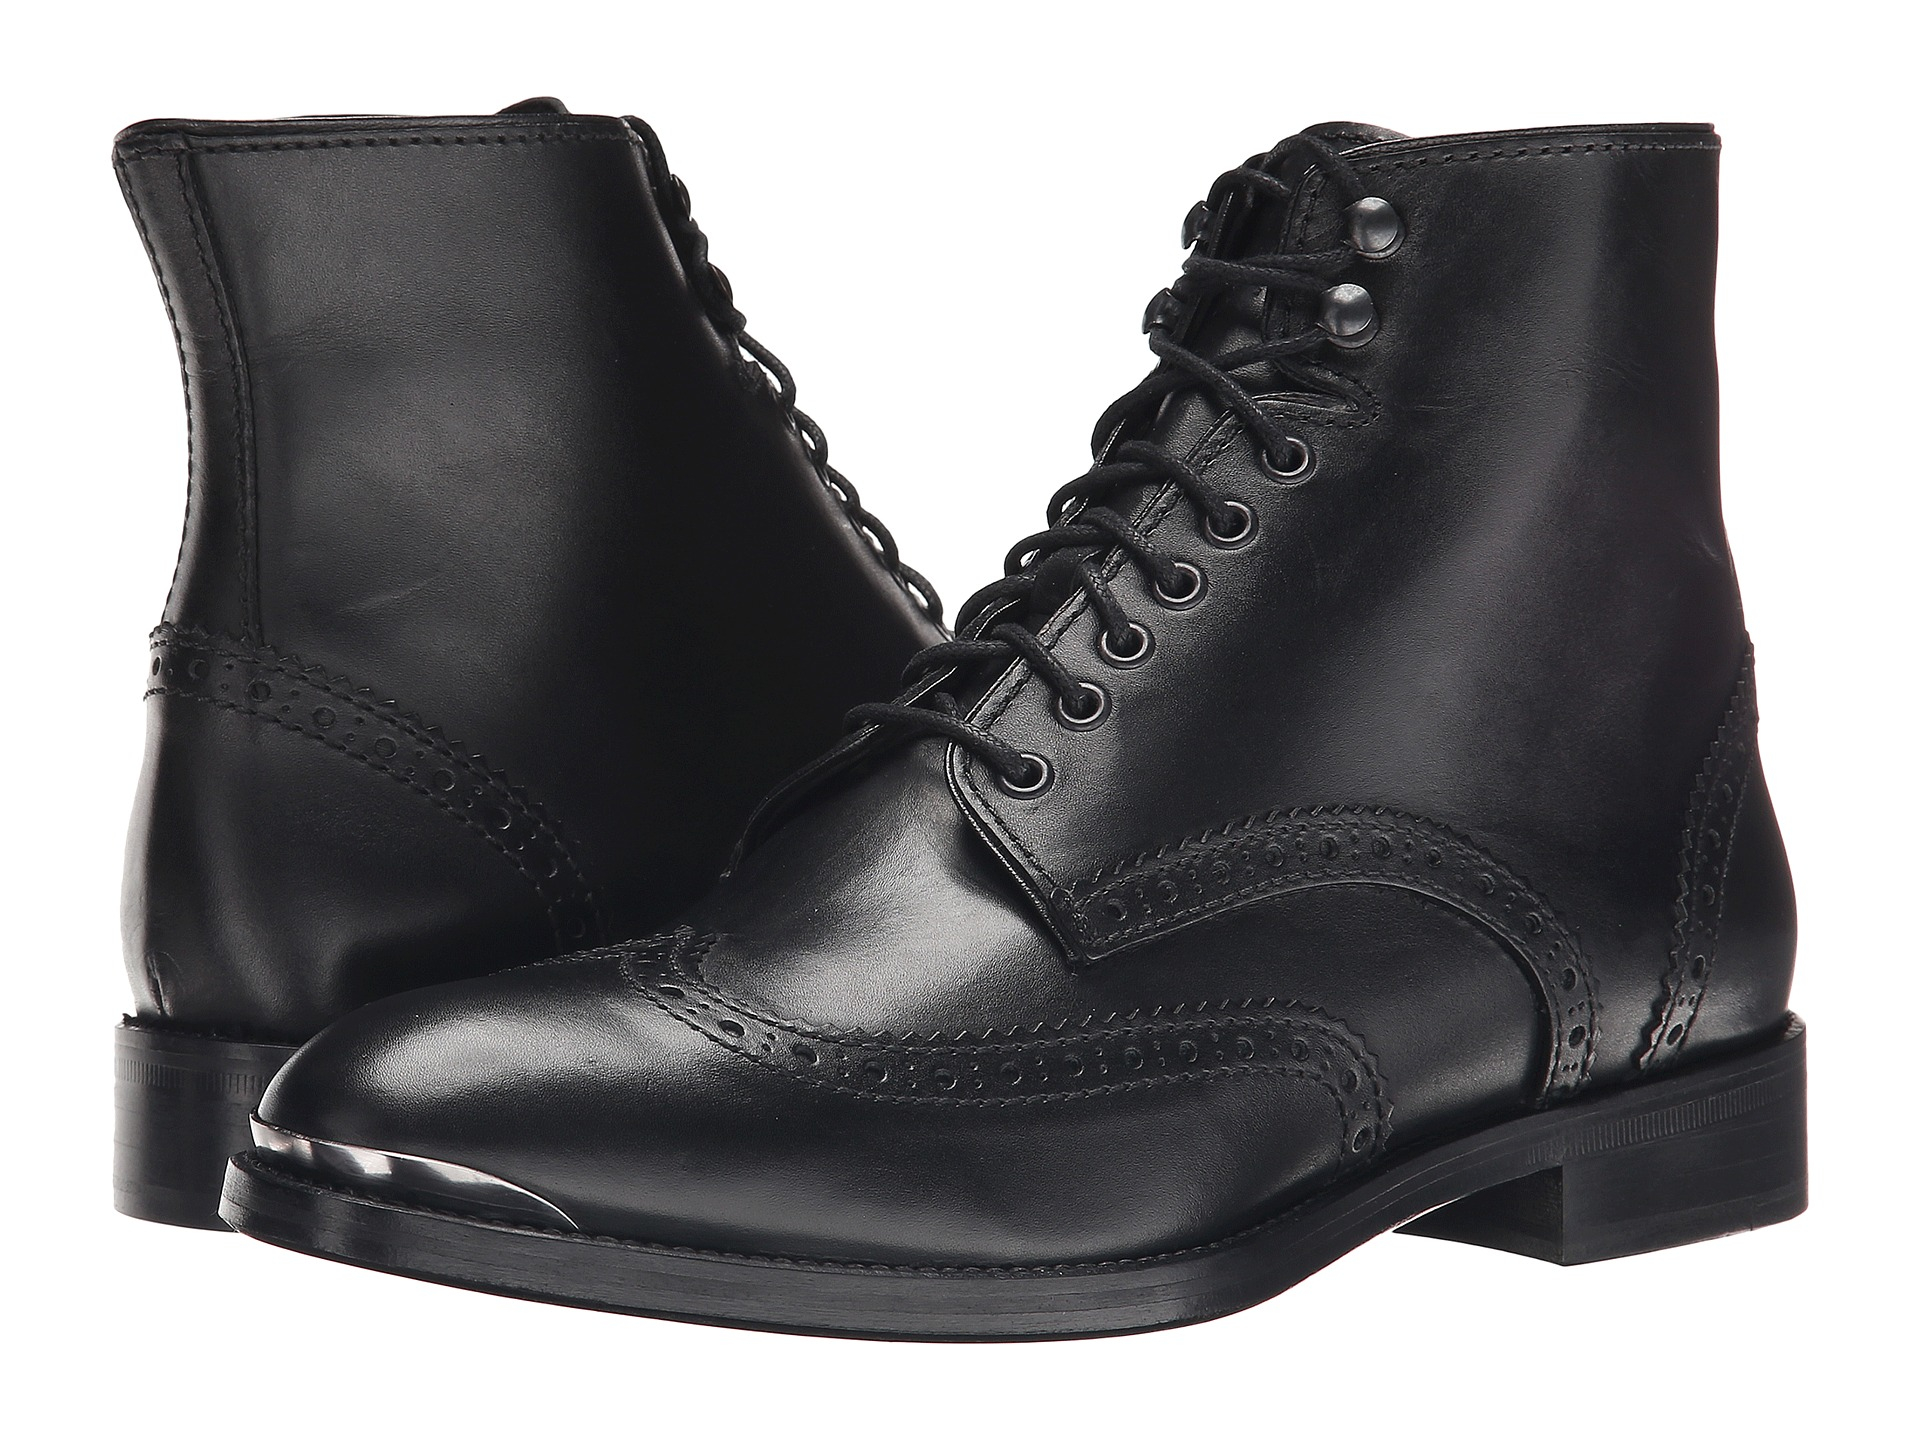 Lyst - The Kooples Smooth Leather Military Boot in Black for Men fd8808c07d6e